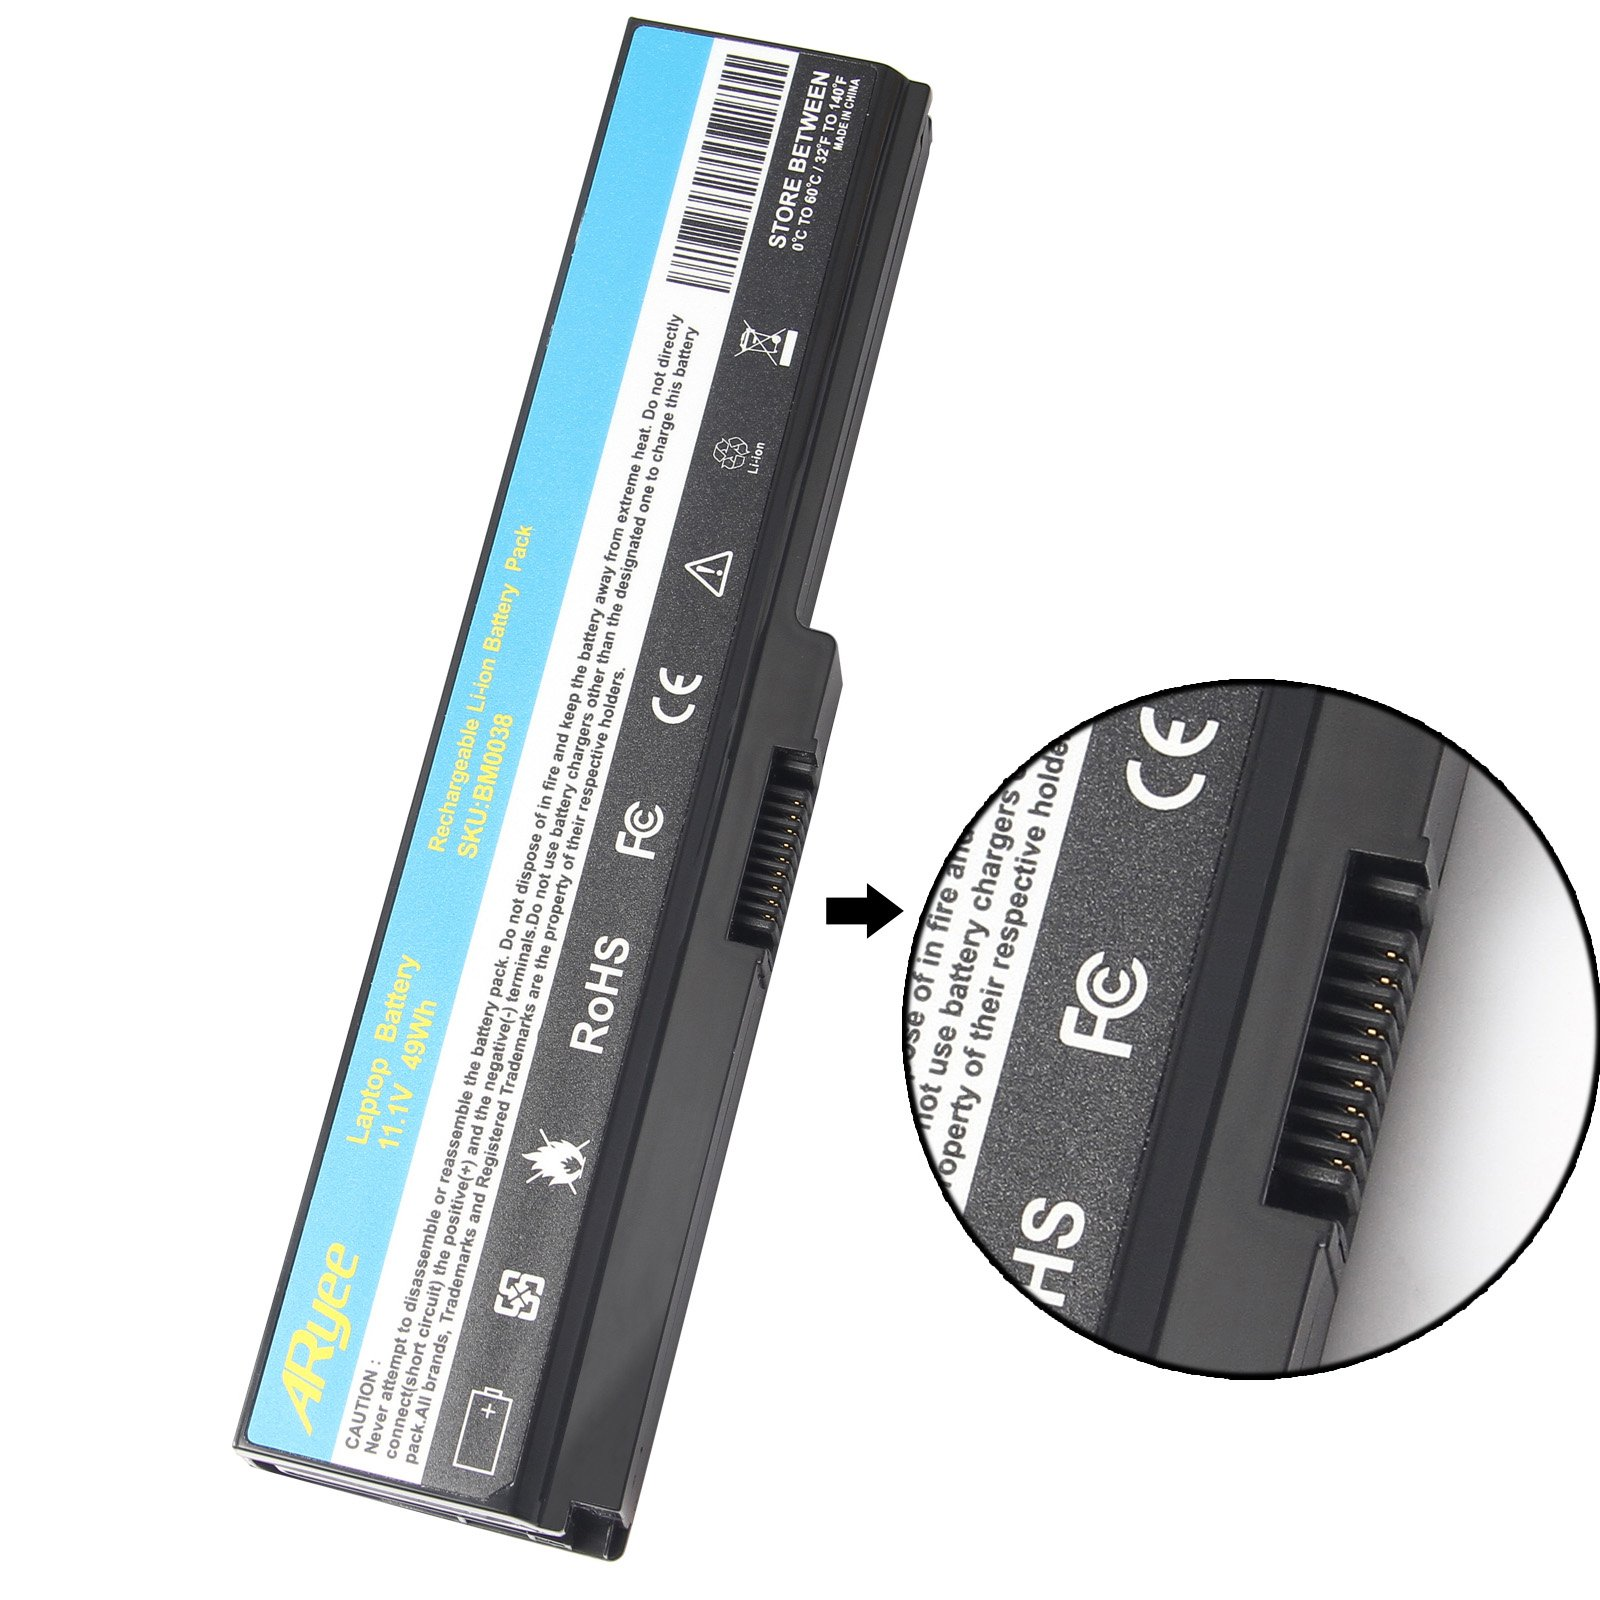 ARyee PA3819U-1BRS Battery for Toshiba Satellite PA3819U-1BRS PA3818U-1BRS PA3816U-1BRS PA3817U-1BRS L730 L735 L850 L750D L775 L775D Series by ARyee (Image #2)